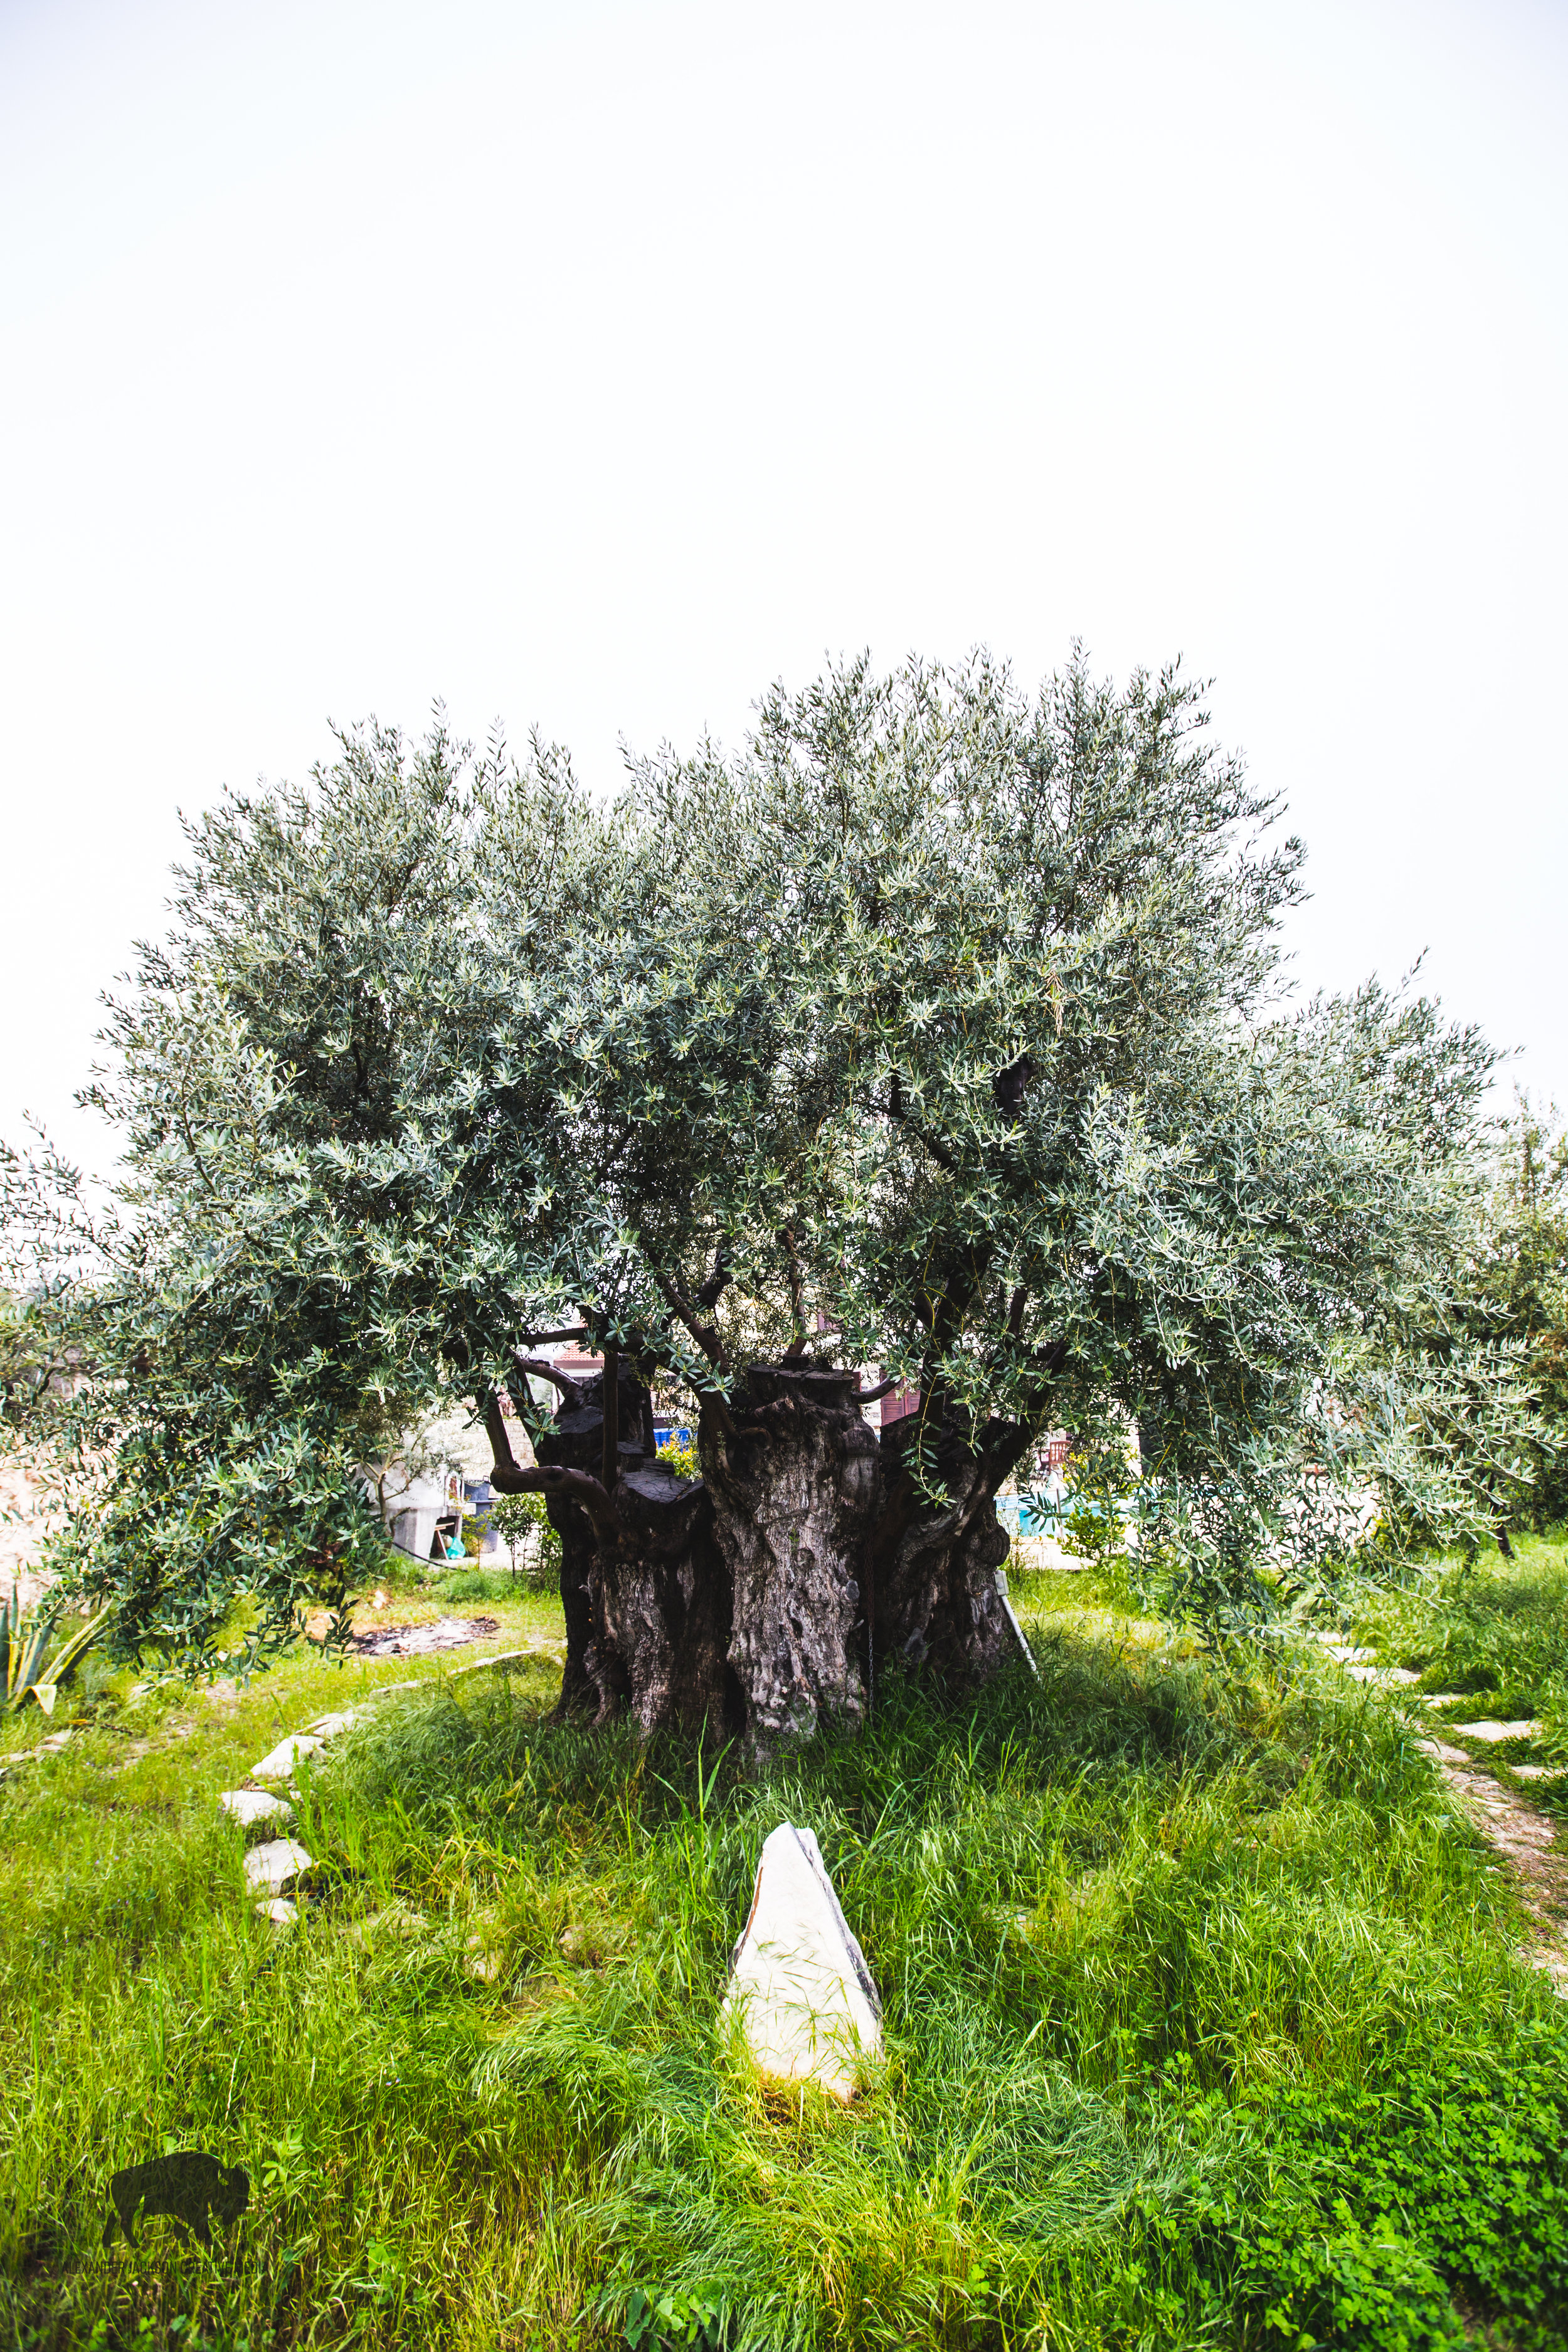 An extremely old (400 years?) olive tree in the backyard of the olive farm that we visited on our last day.